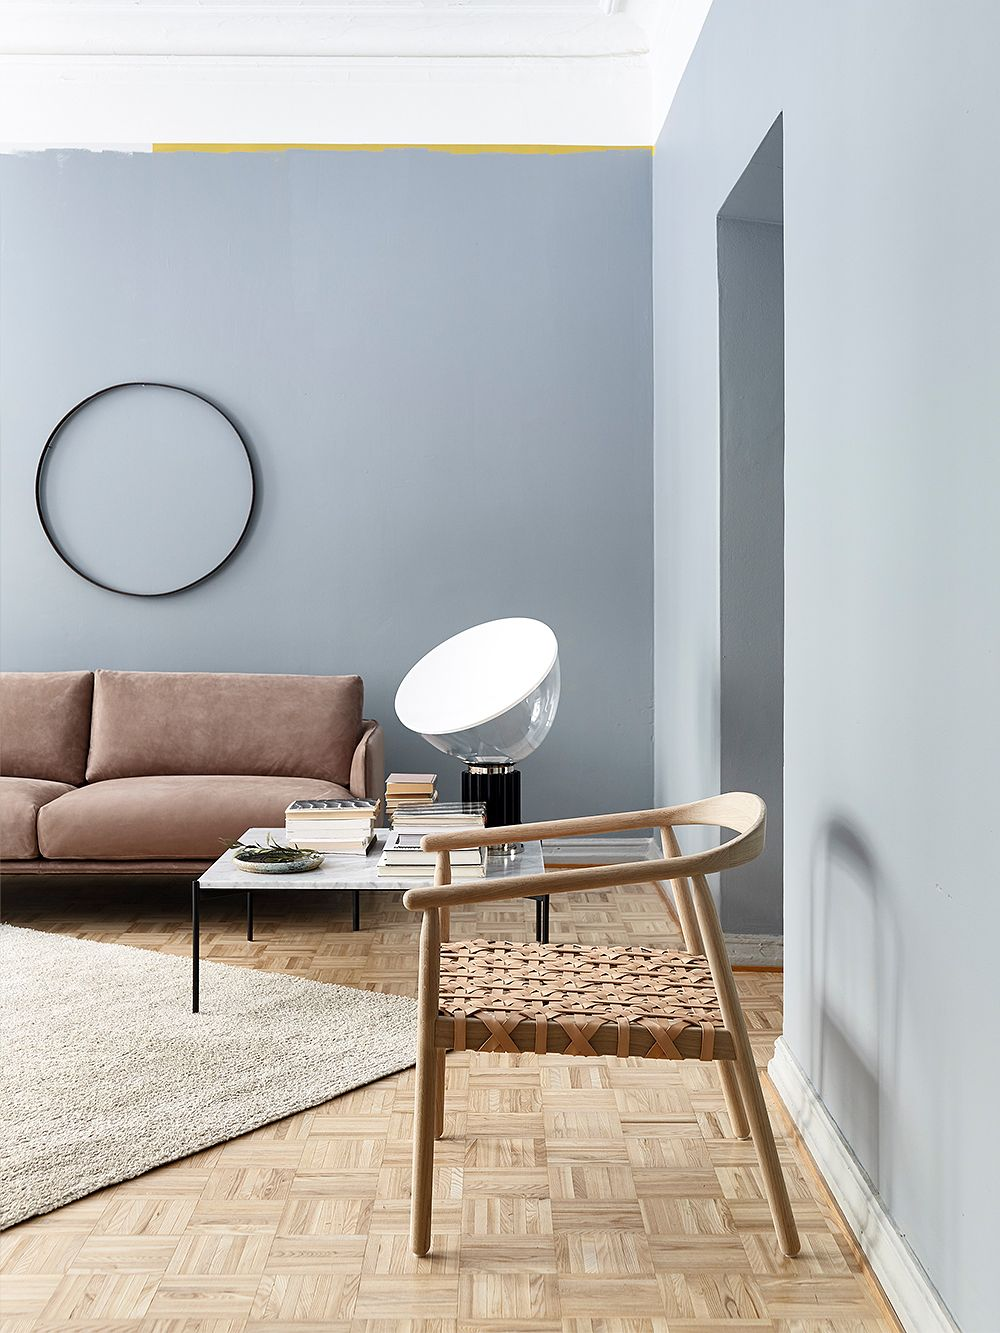 Taccia table lamp by Flos and Fay chair by Adea.